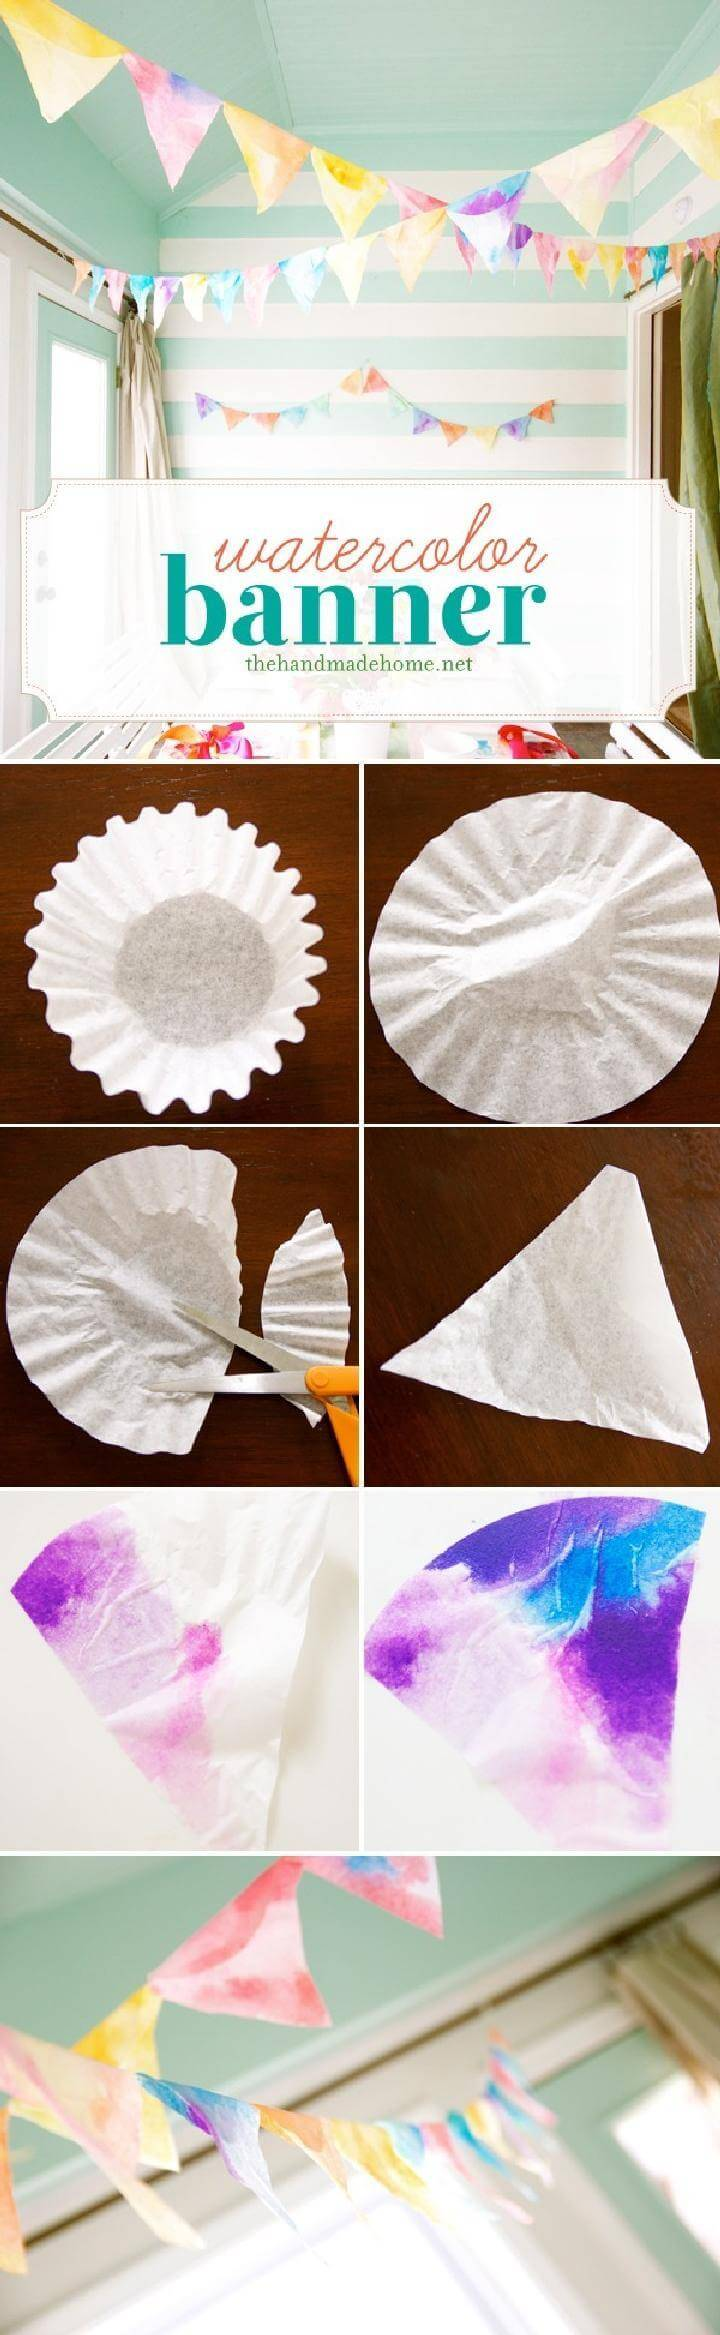 DIY Watercolored Coffee Filter Banner